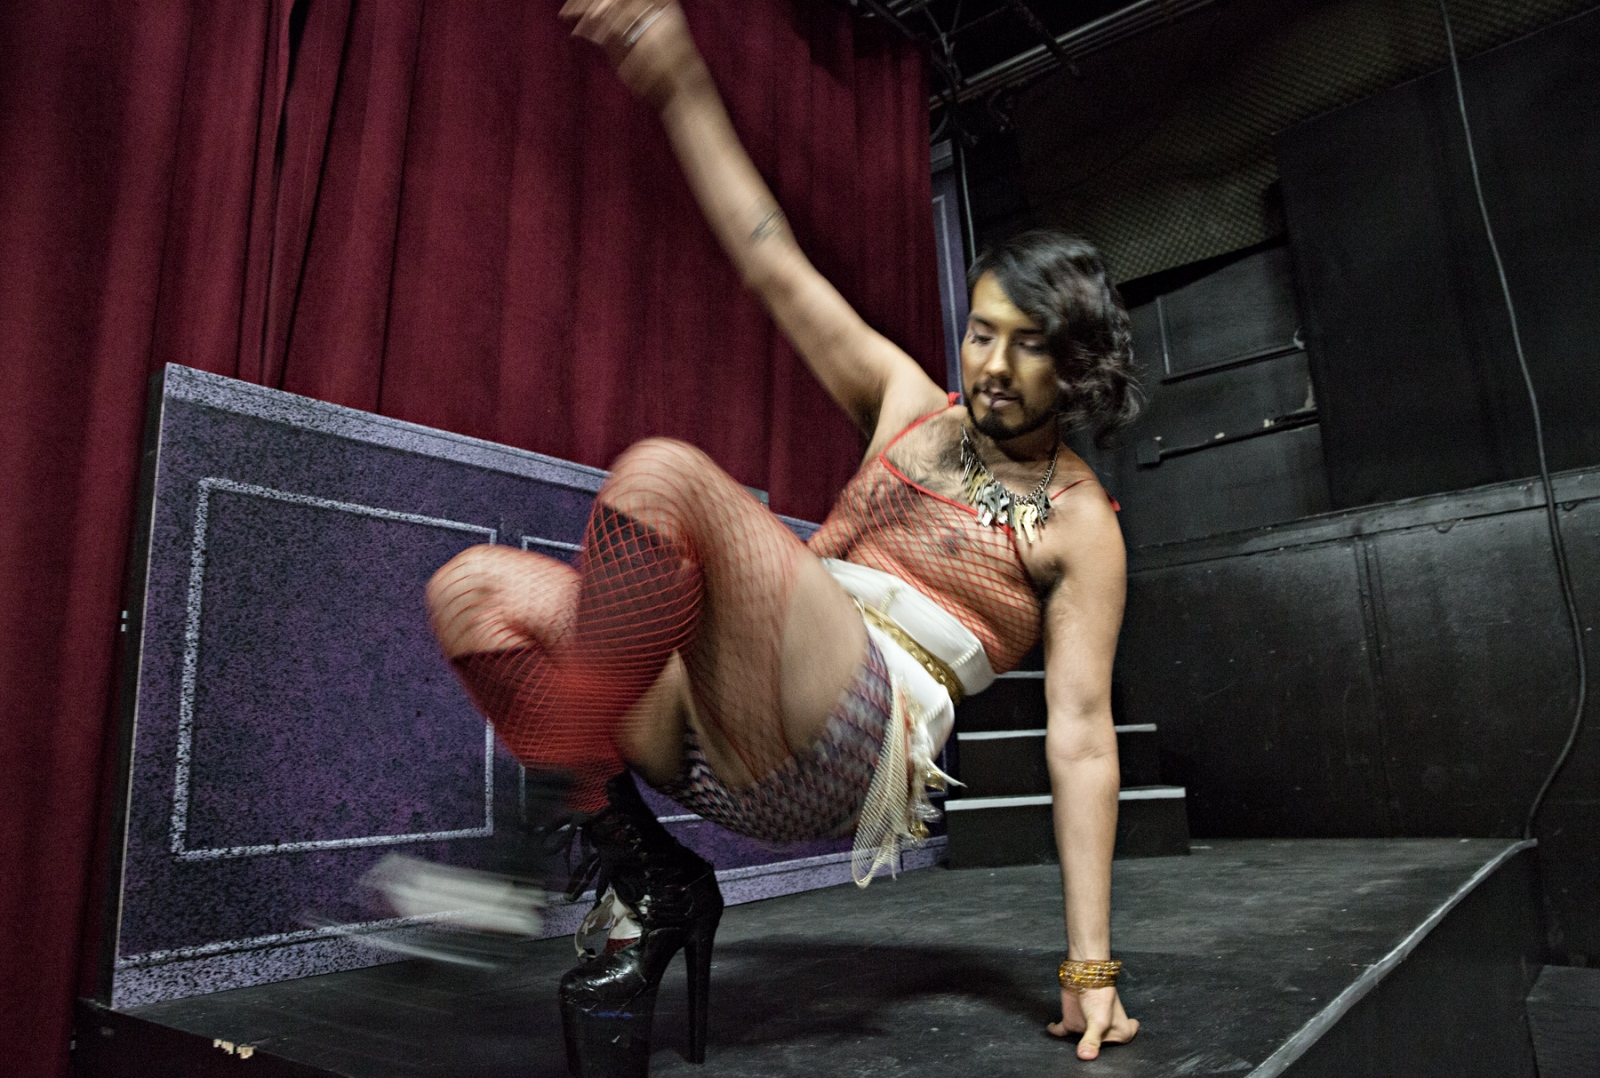 A member of Vaudzilla Burlesque practices his routine before the show begins.